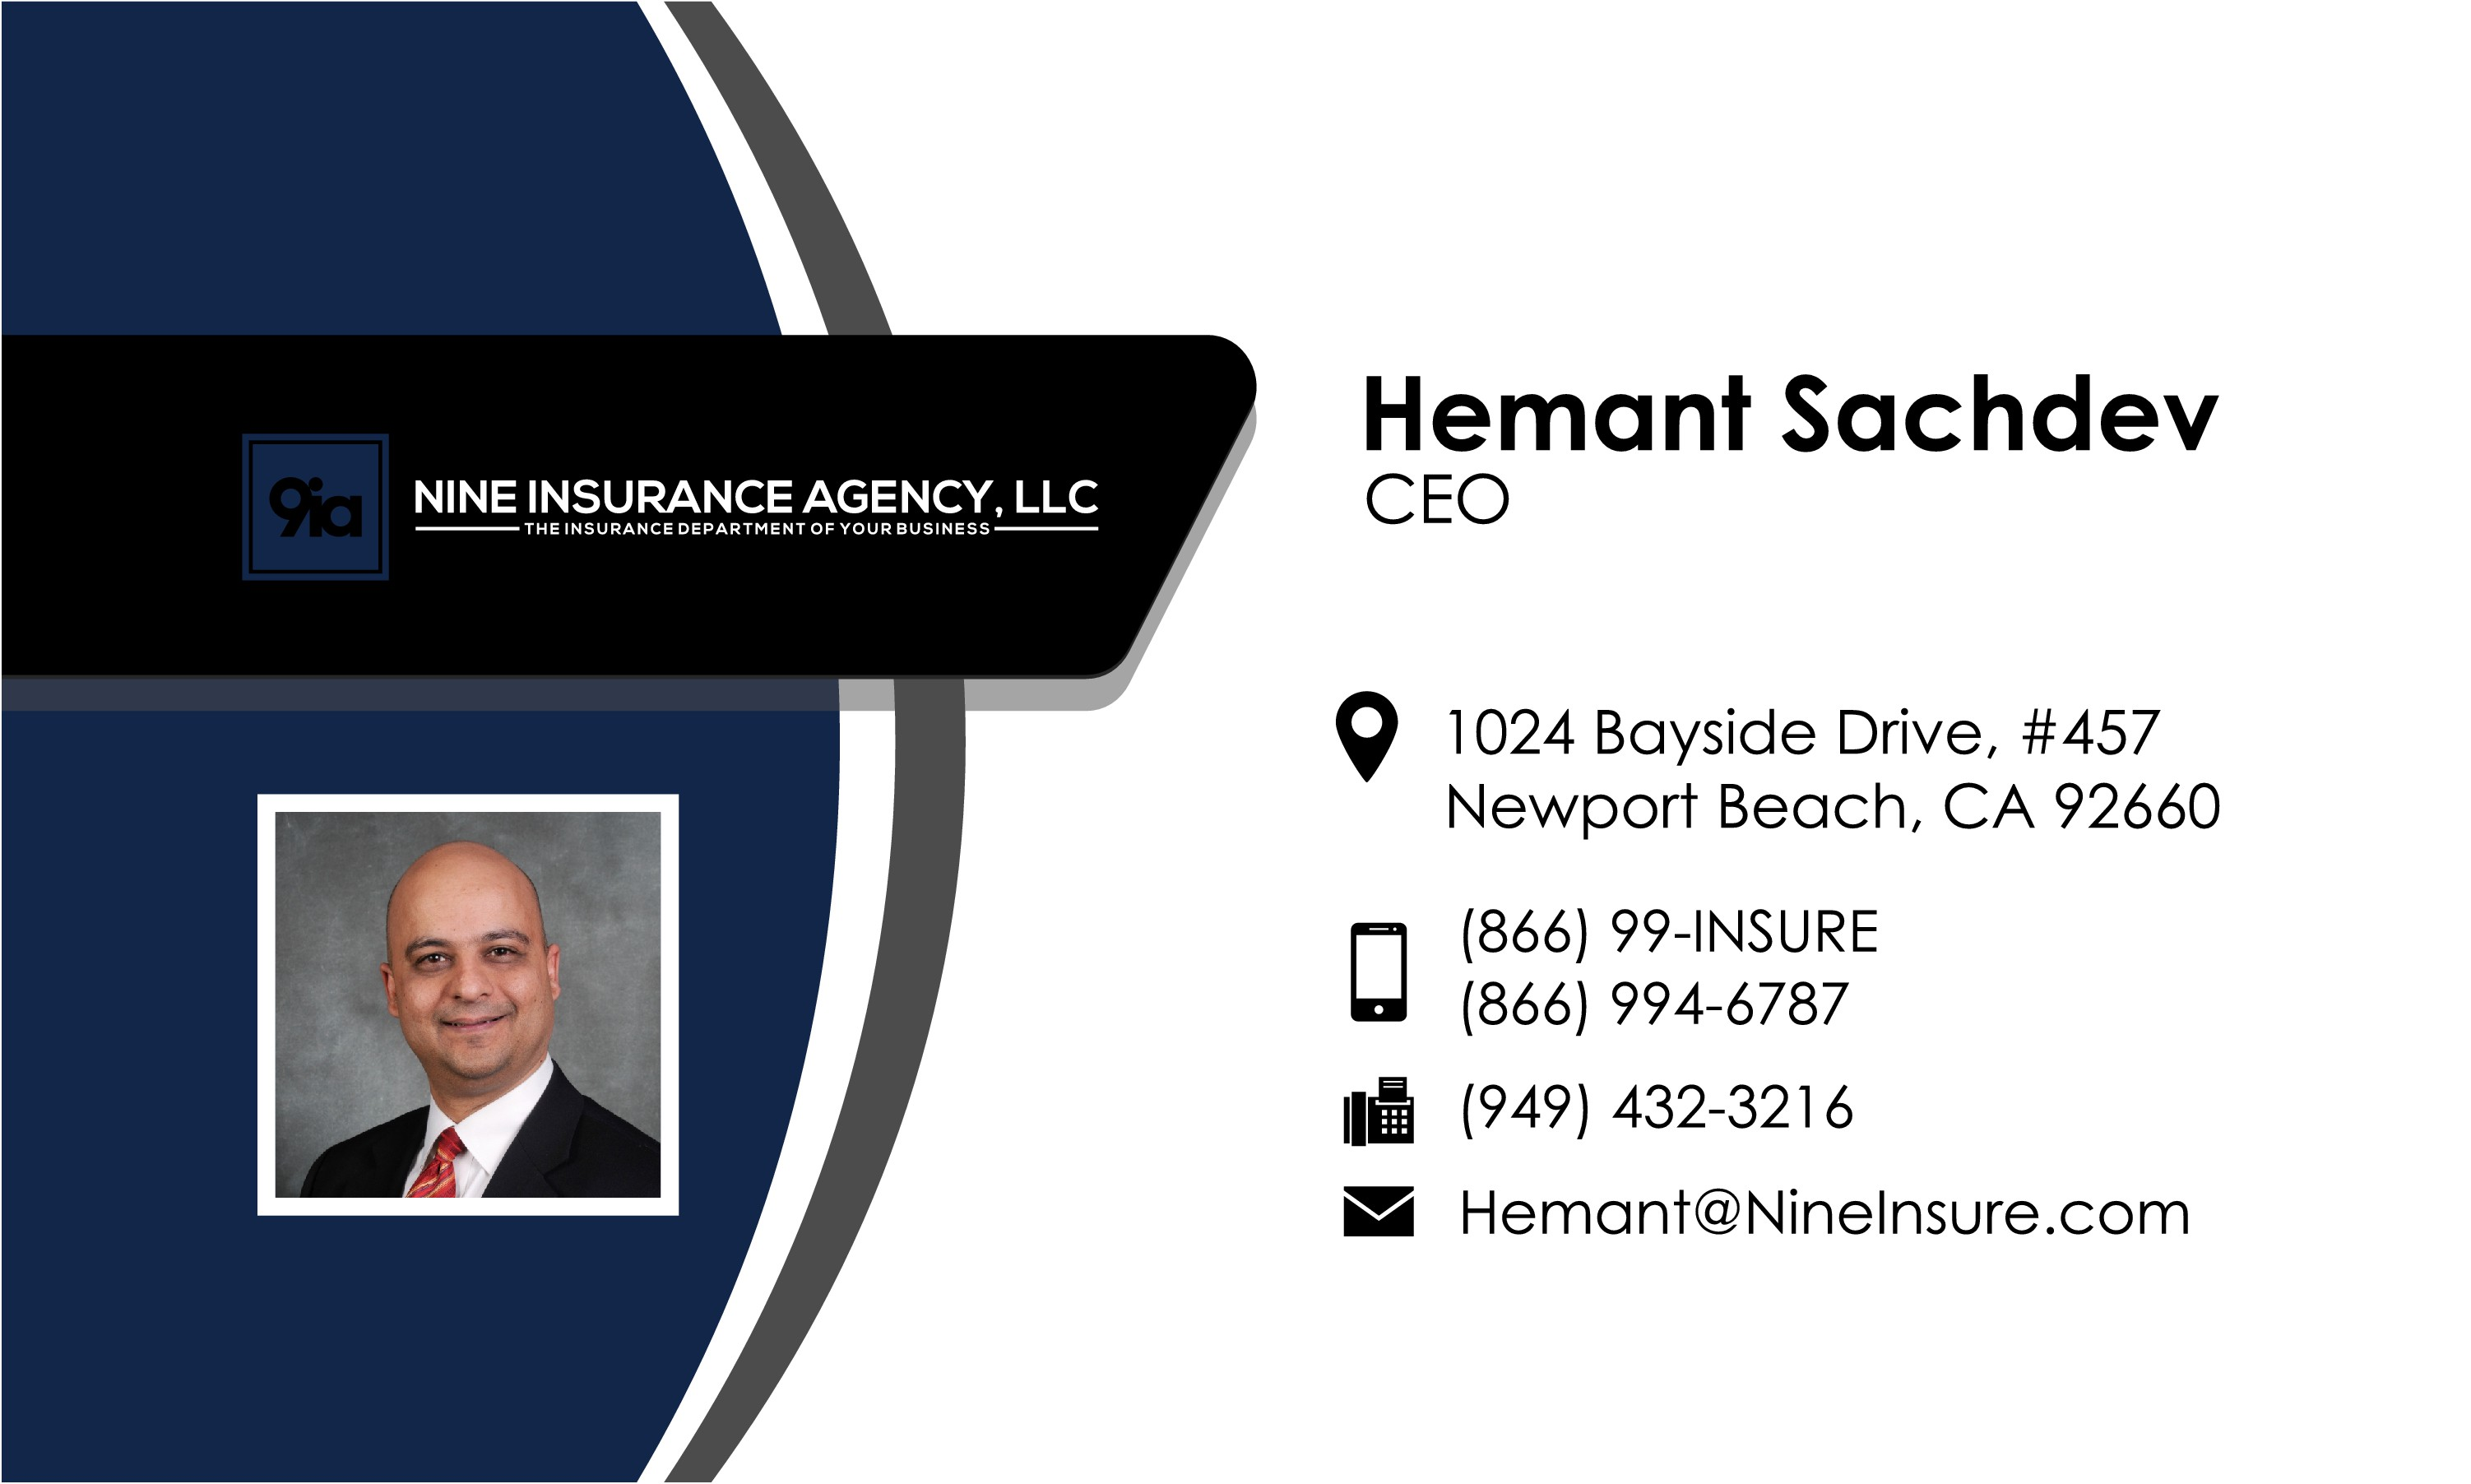 Next Generation of High End Insurance Brokerage General Agency needs sophisticated logo